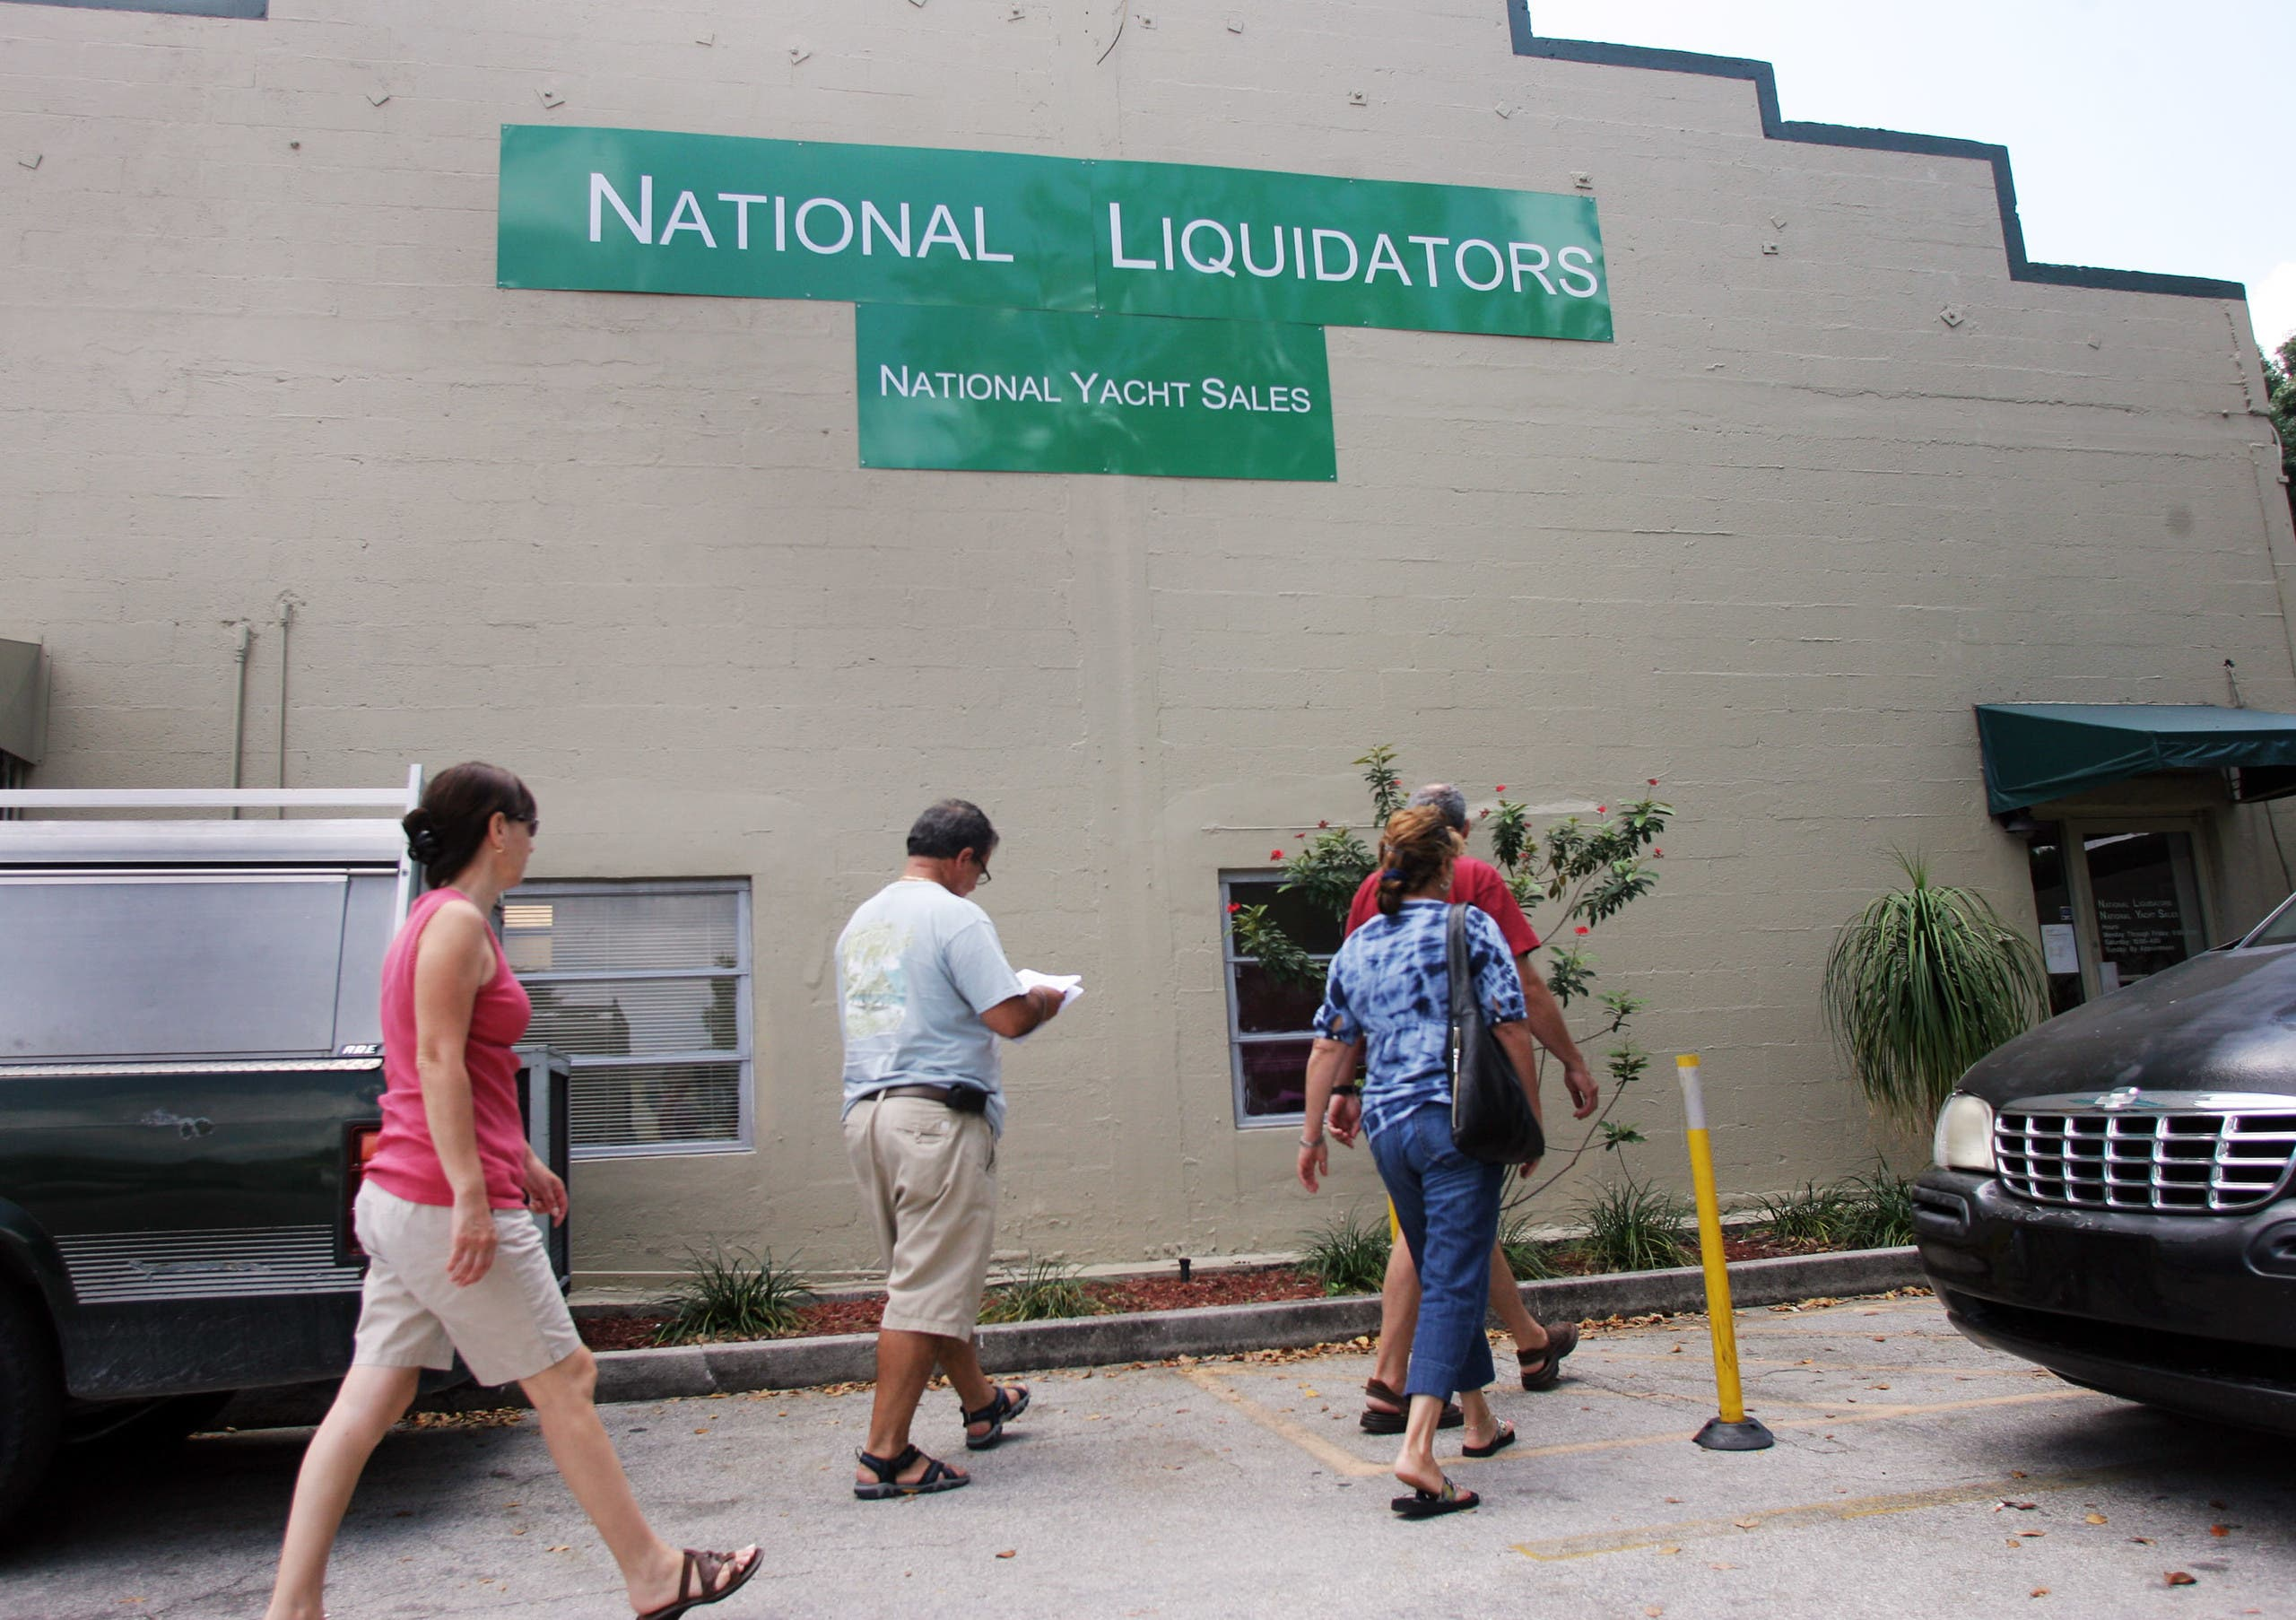 People walk outside of National Liquidators in Ft. Lauderdale, Fla., on Wednesday April 1, 2009, where financier Bernie Madoff's 55-foot yacht named Bull is being held after being seized by federal authorities. (AP)